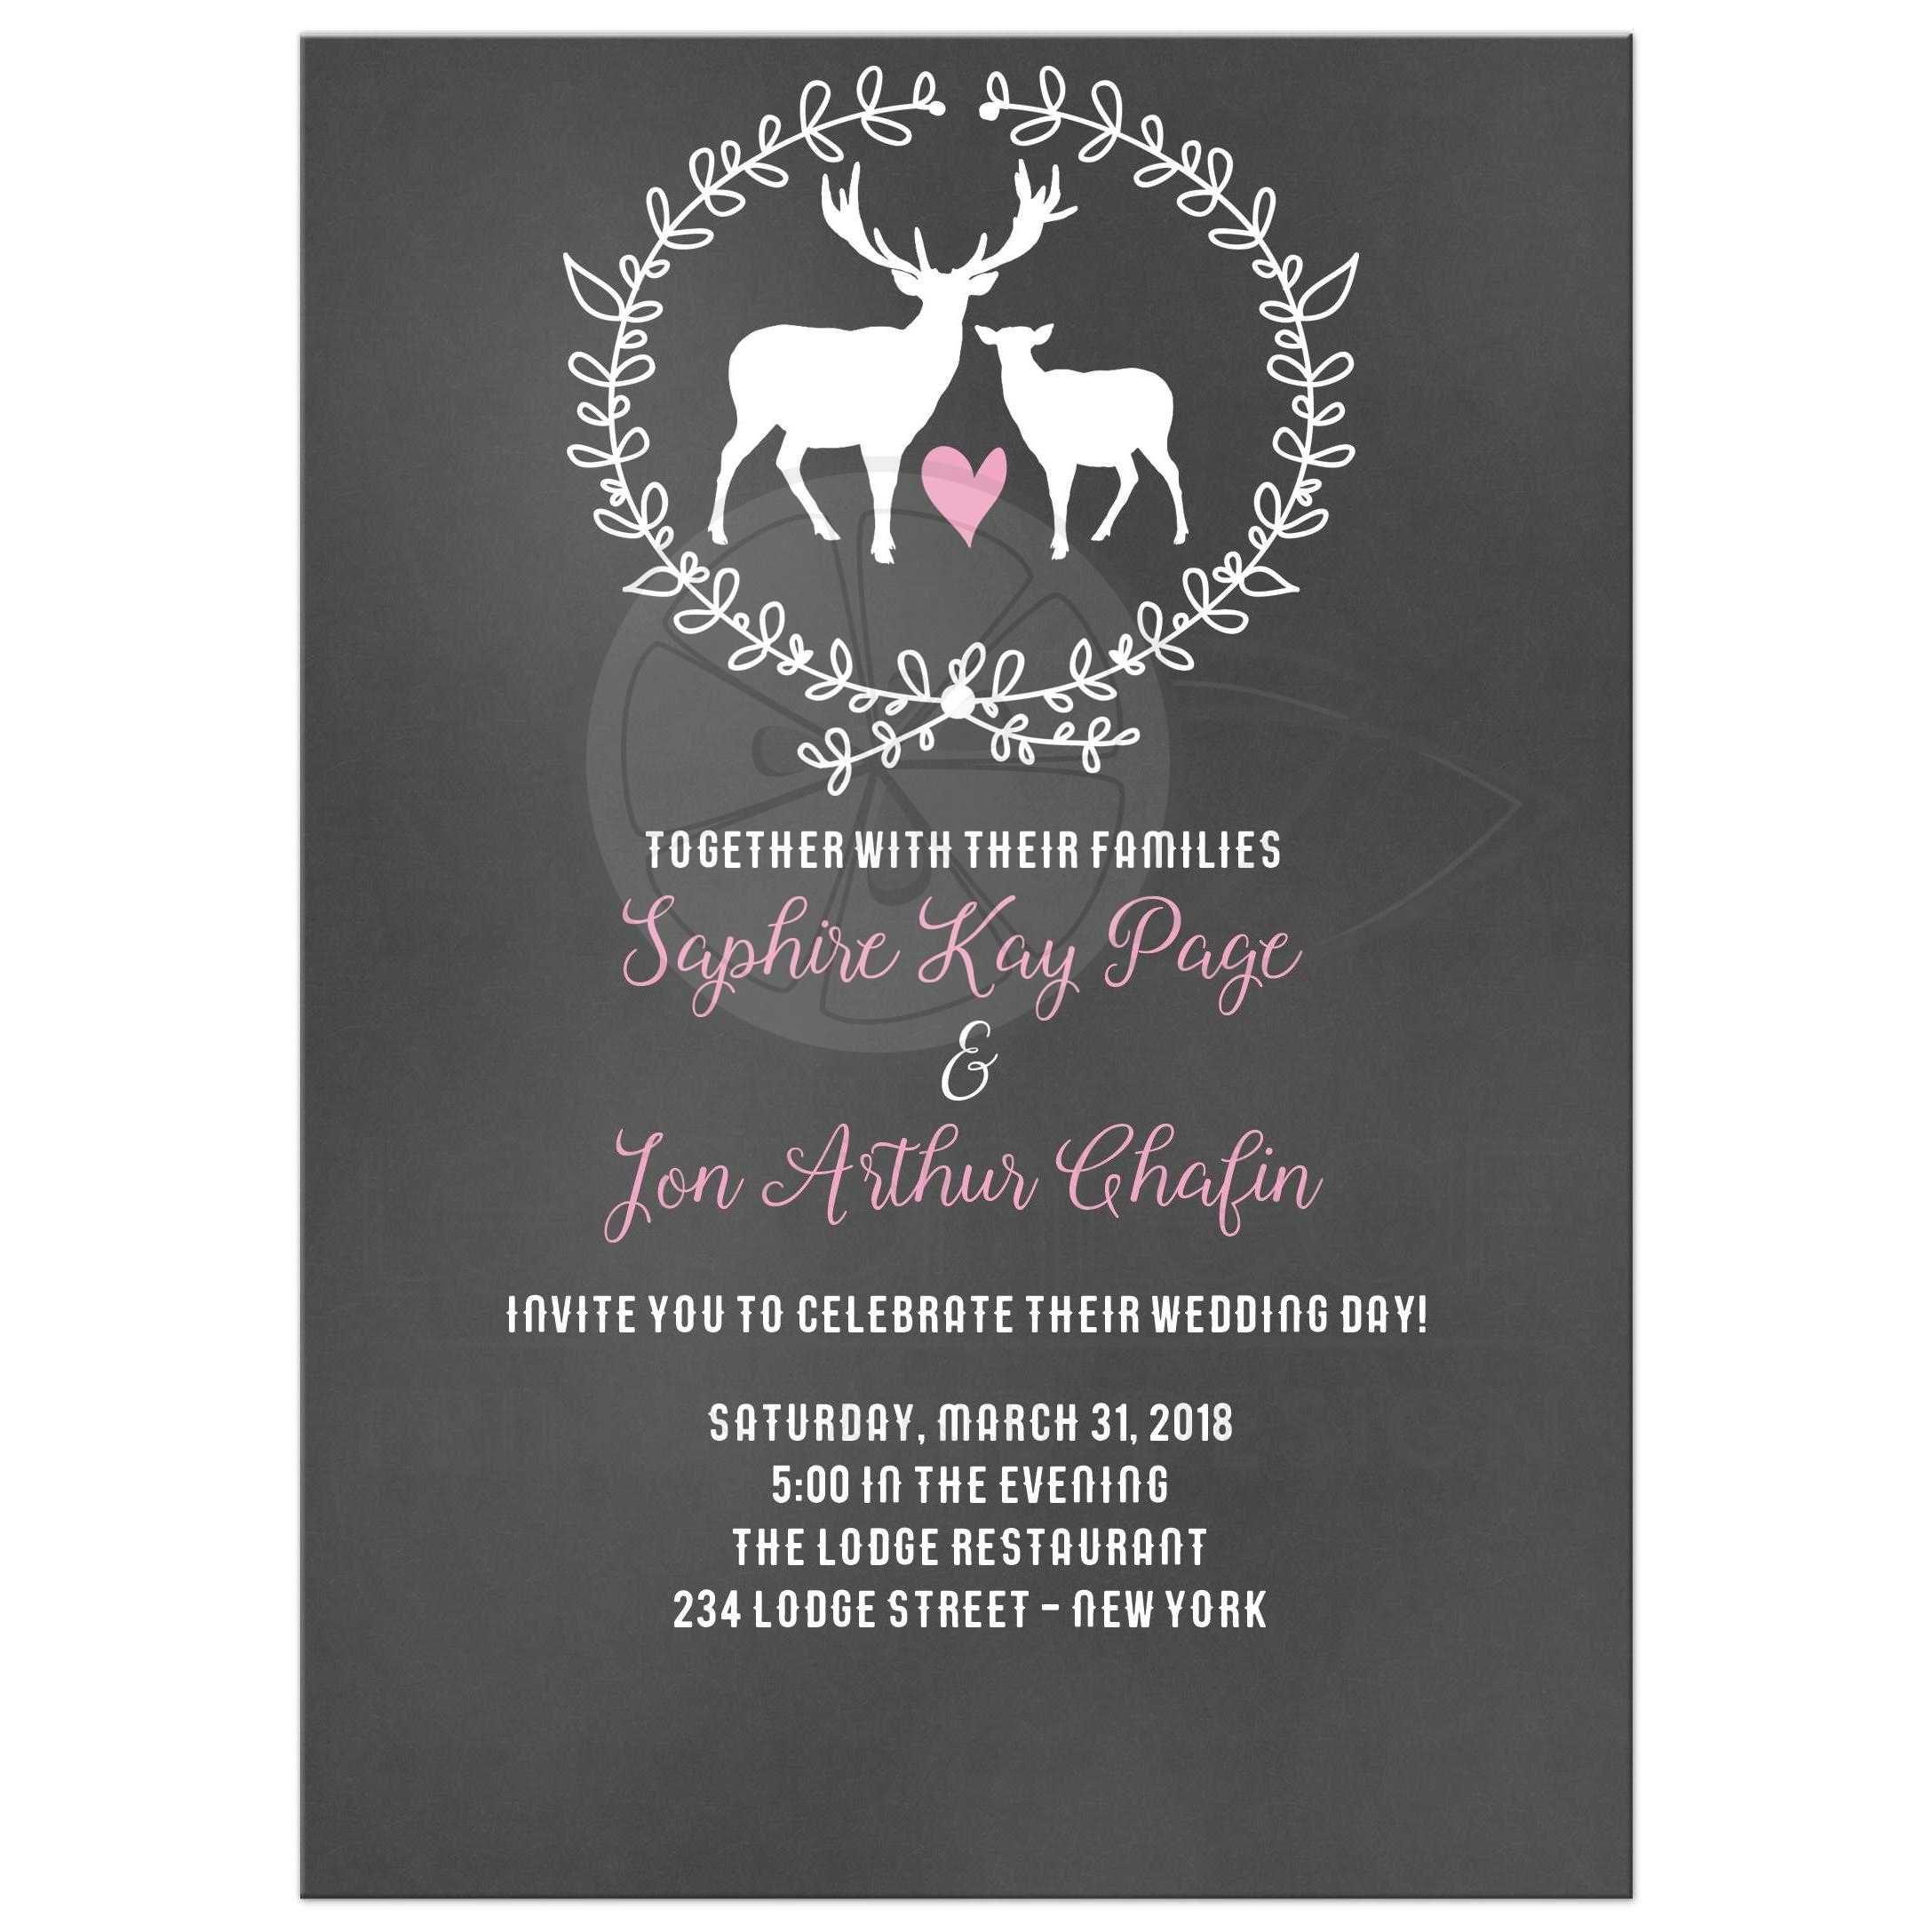 Best Of Wedding Reception Invite Wording Wedding Ideas